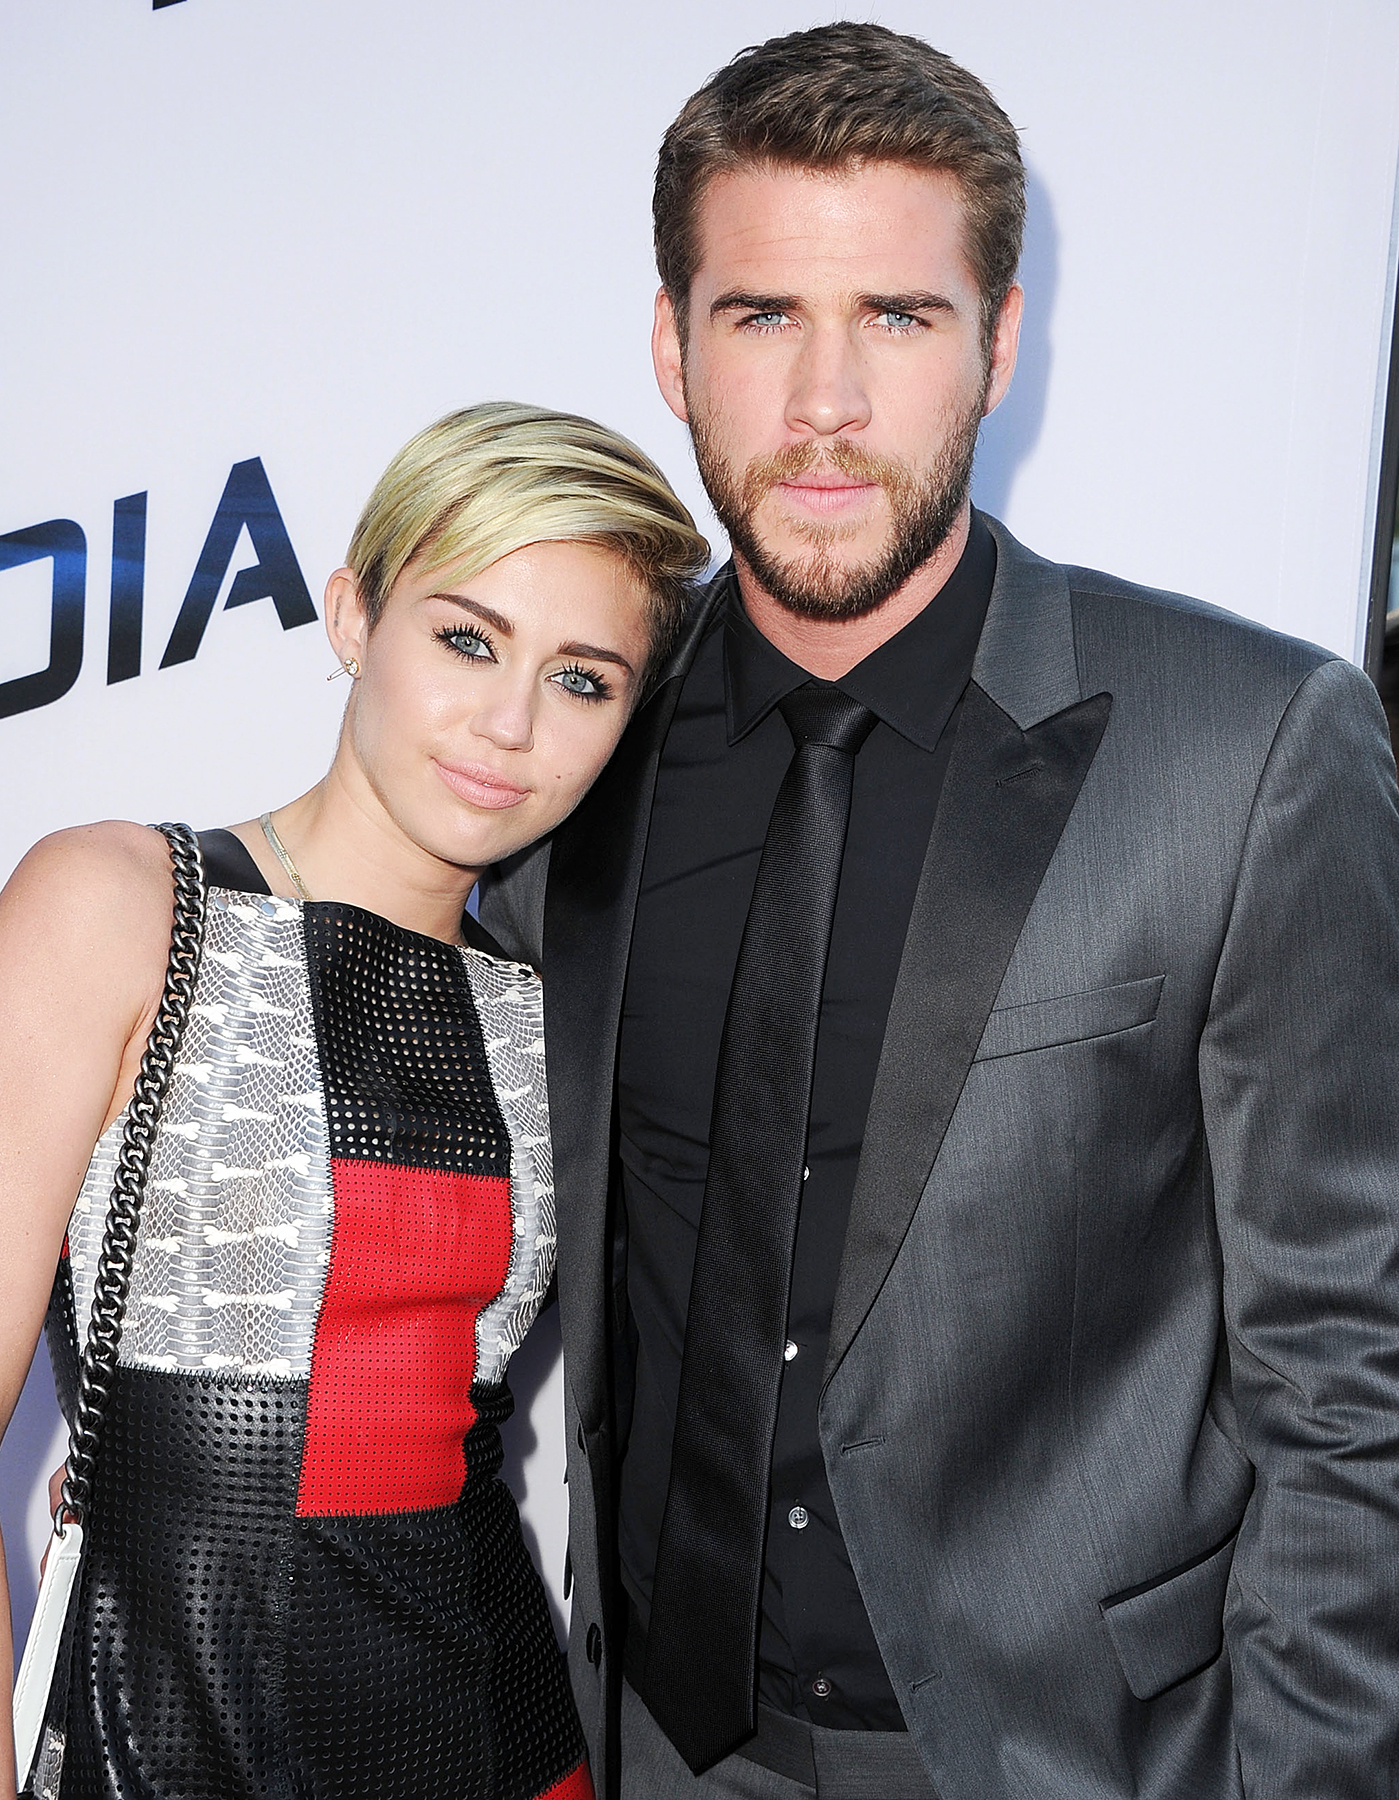 Miley Cyrus and Liam Hemsworth Aren't Married: 'She Would Have Told People'